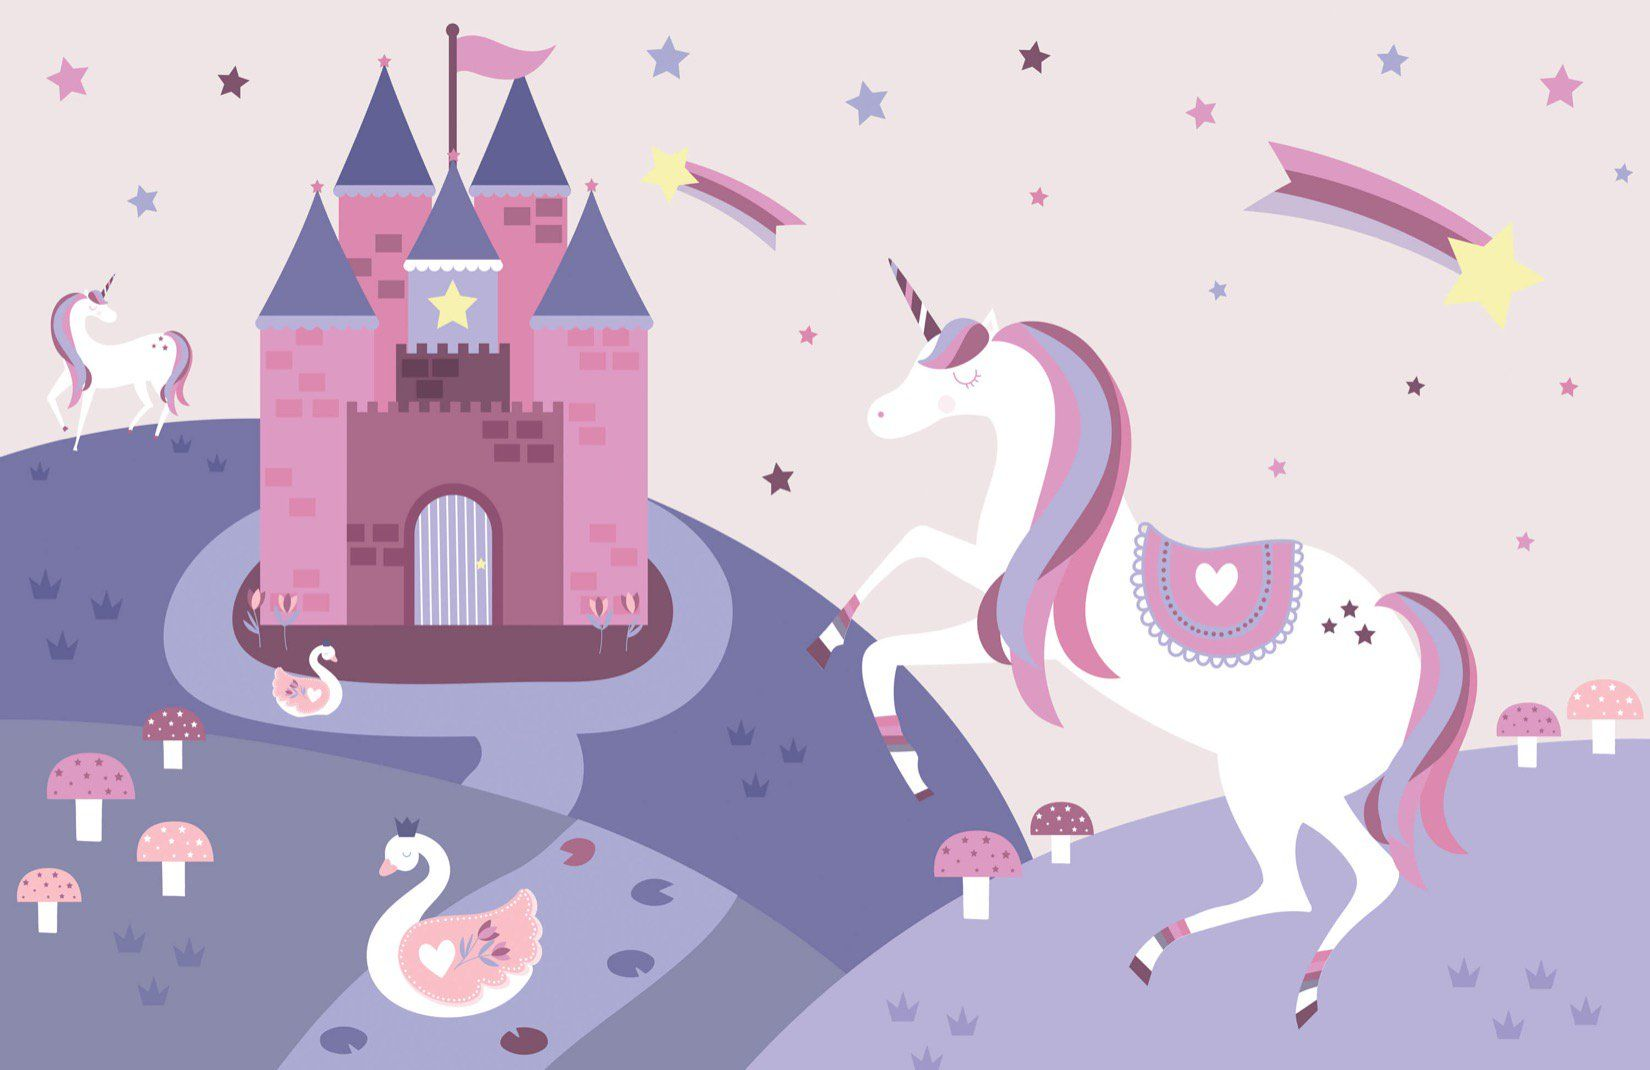 Fairytale Unicorn Wallpaper Mural de pared | MuralesWallpaper.co.uk